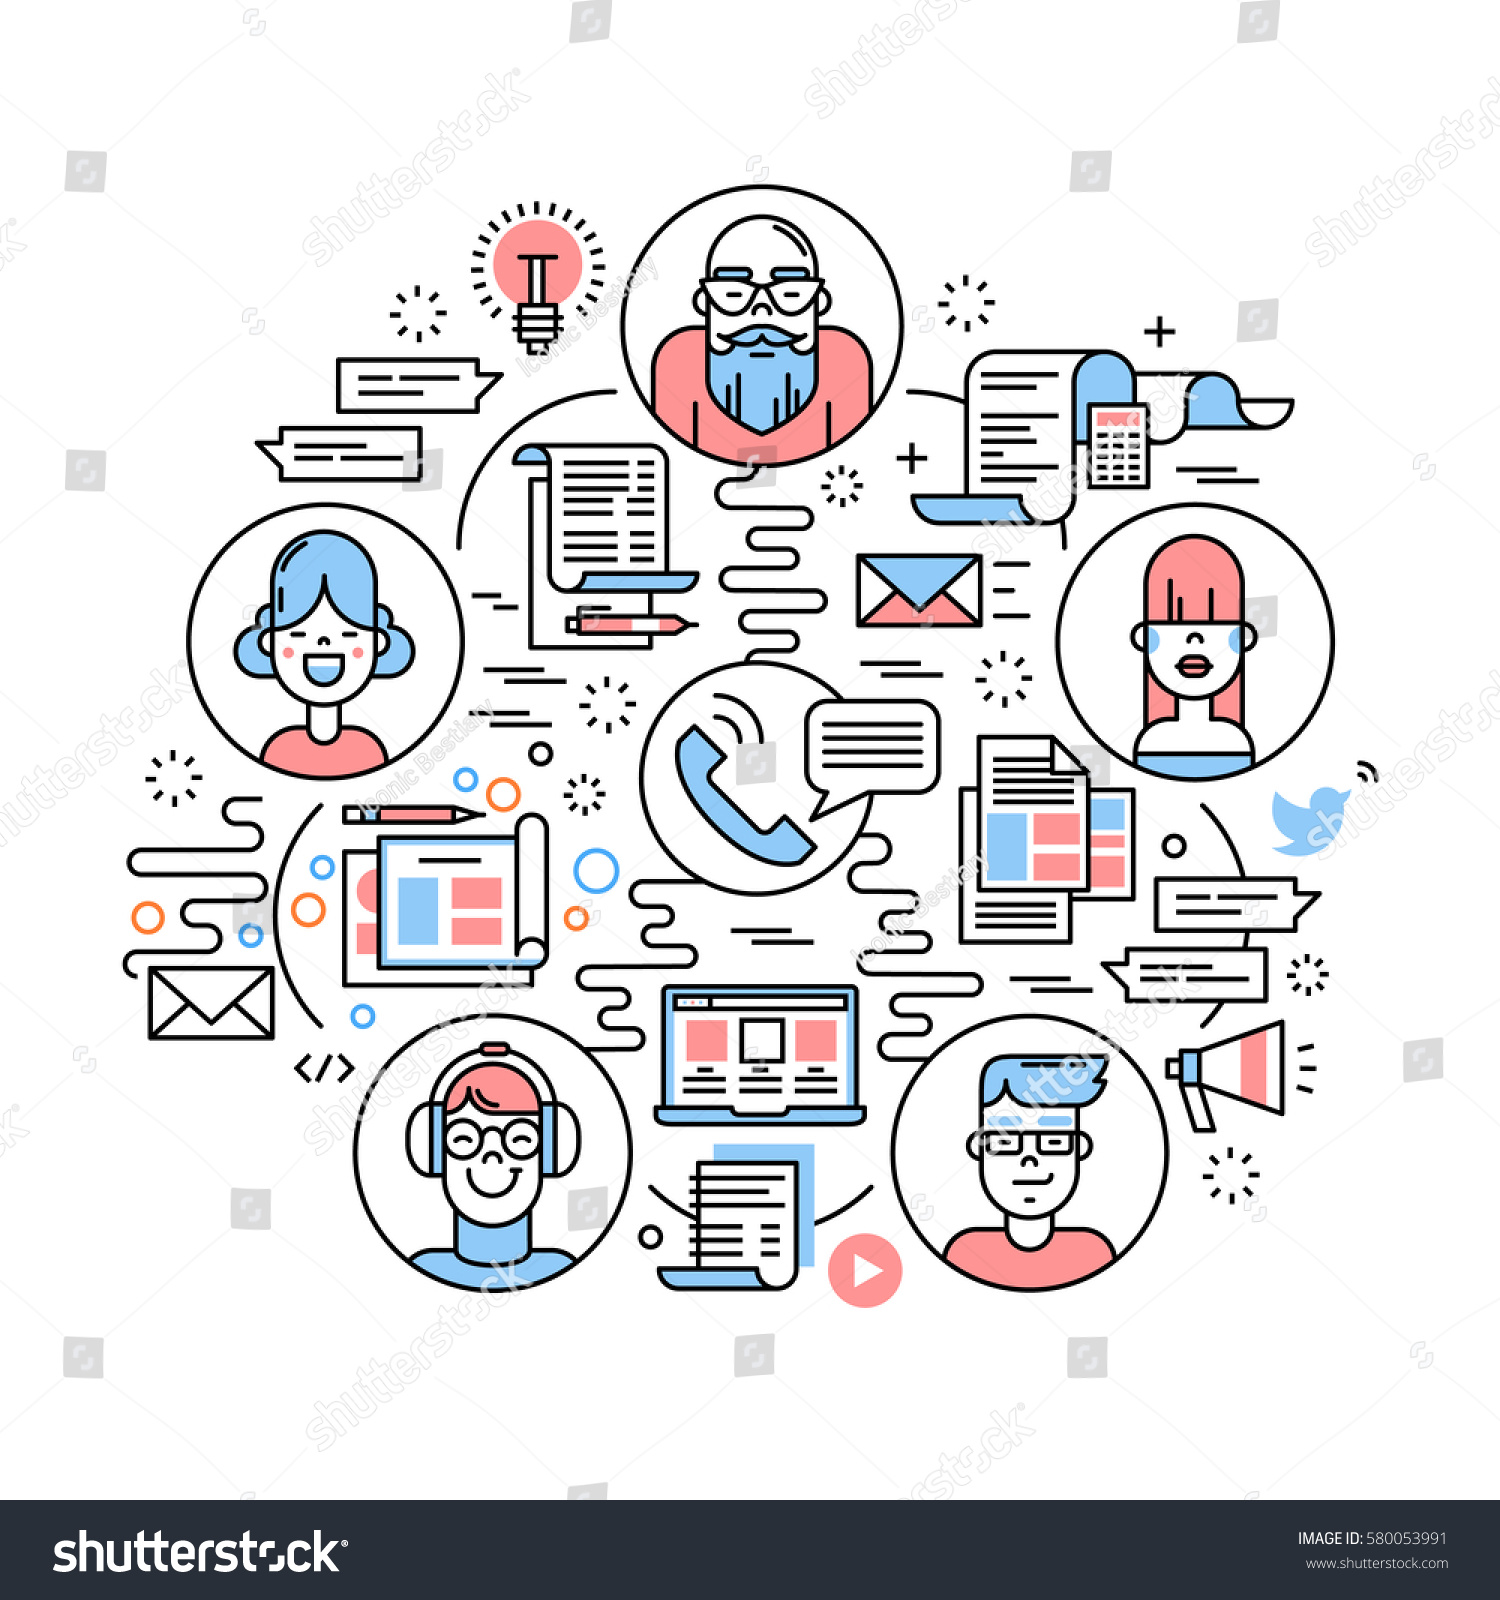 collaboration and communication in business Address knowledge management, collaboration, and communication  customs, business practices, communication and negotiation styles, it is extremely important for .